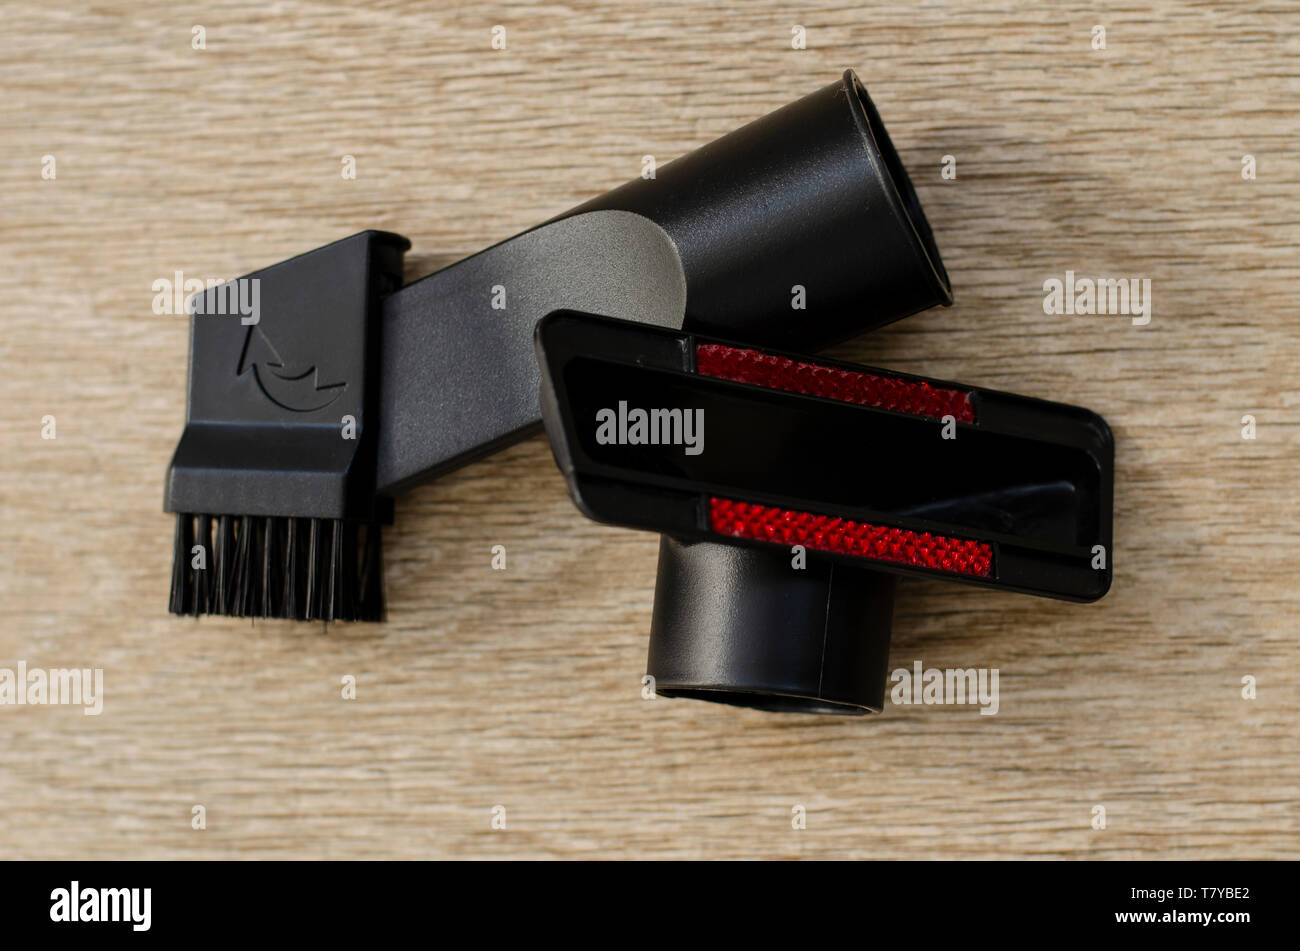 Nozzles for Vacuum Cleaner. Housekeeping and cleaning concept. - Stock Image